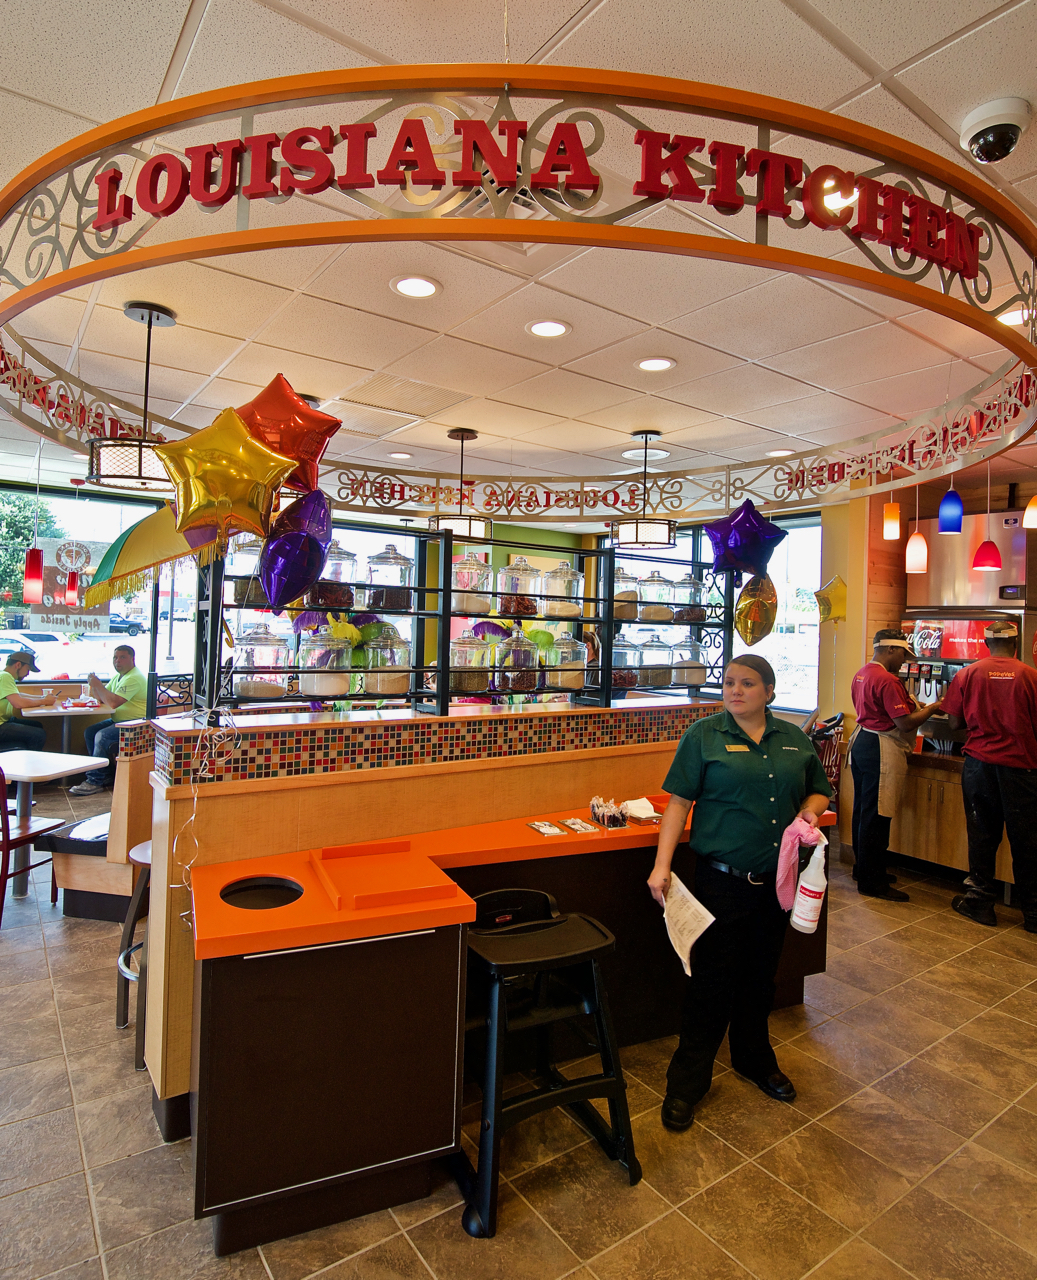 White Kitchen Louisiana popeye's louisiana kitchen opens in white center bringing 78 jobs